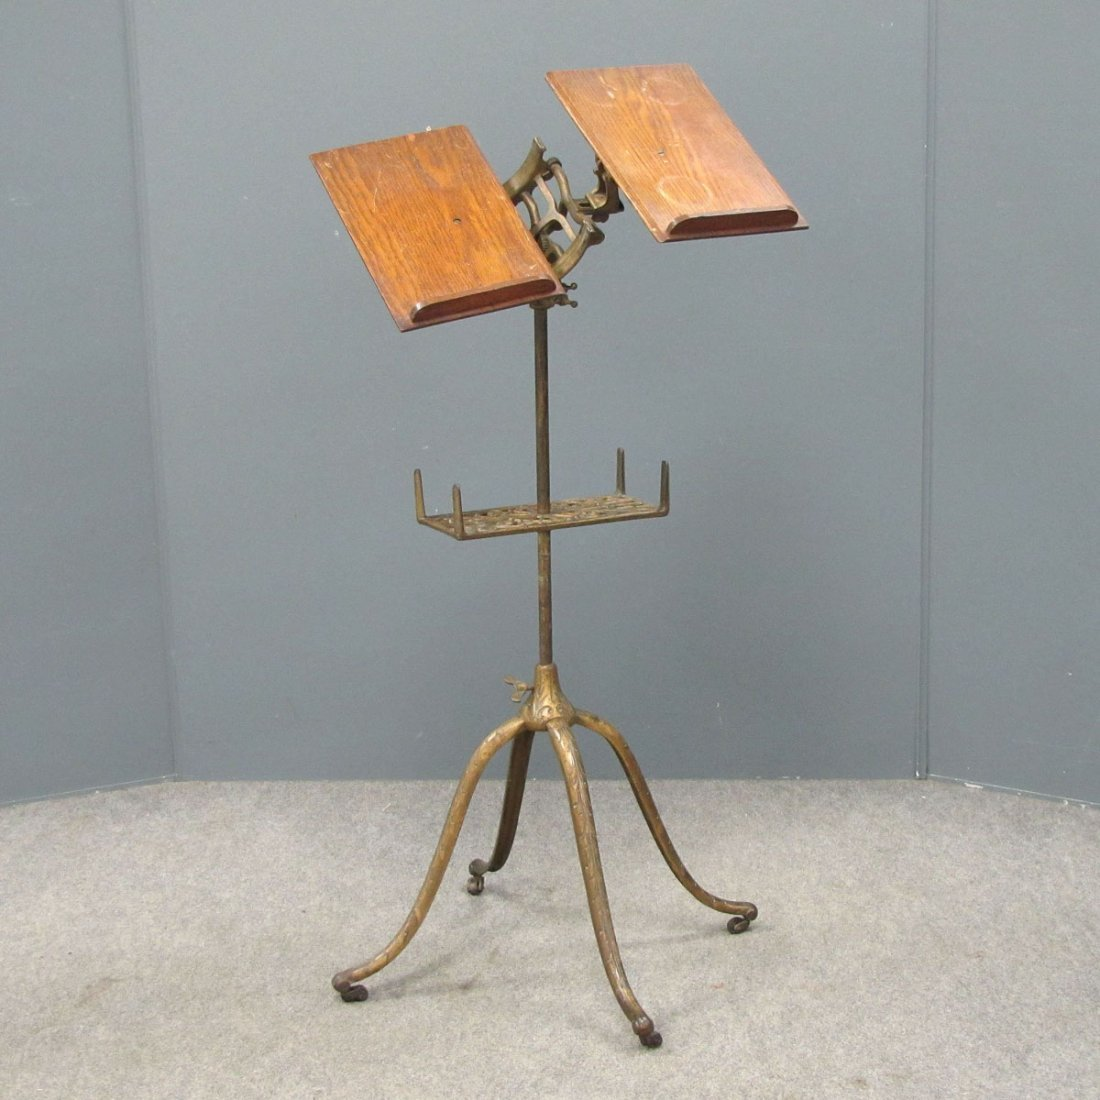 VINTAGE CAST IRON AND OAK ADJUSTABLE BOOK STAND